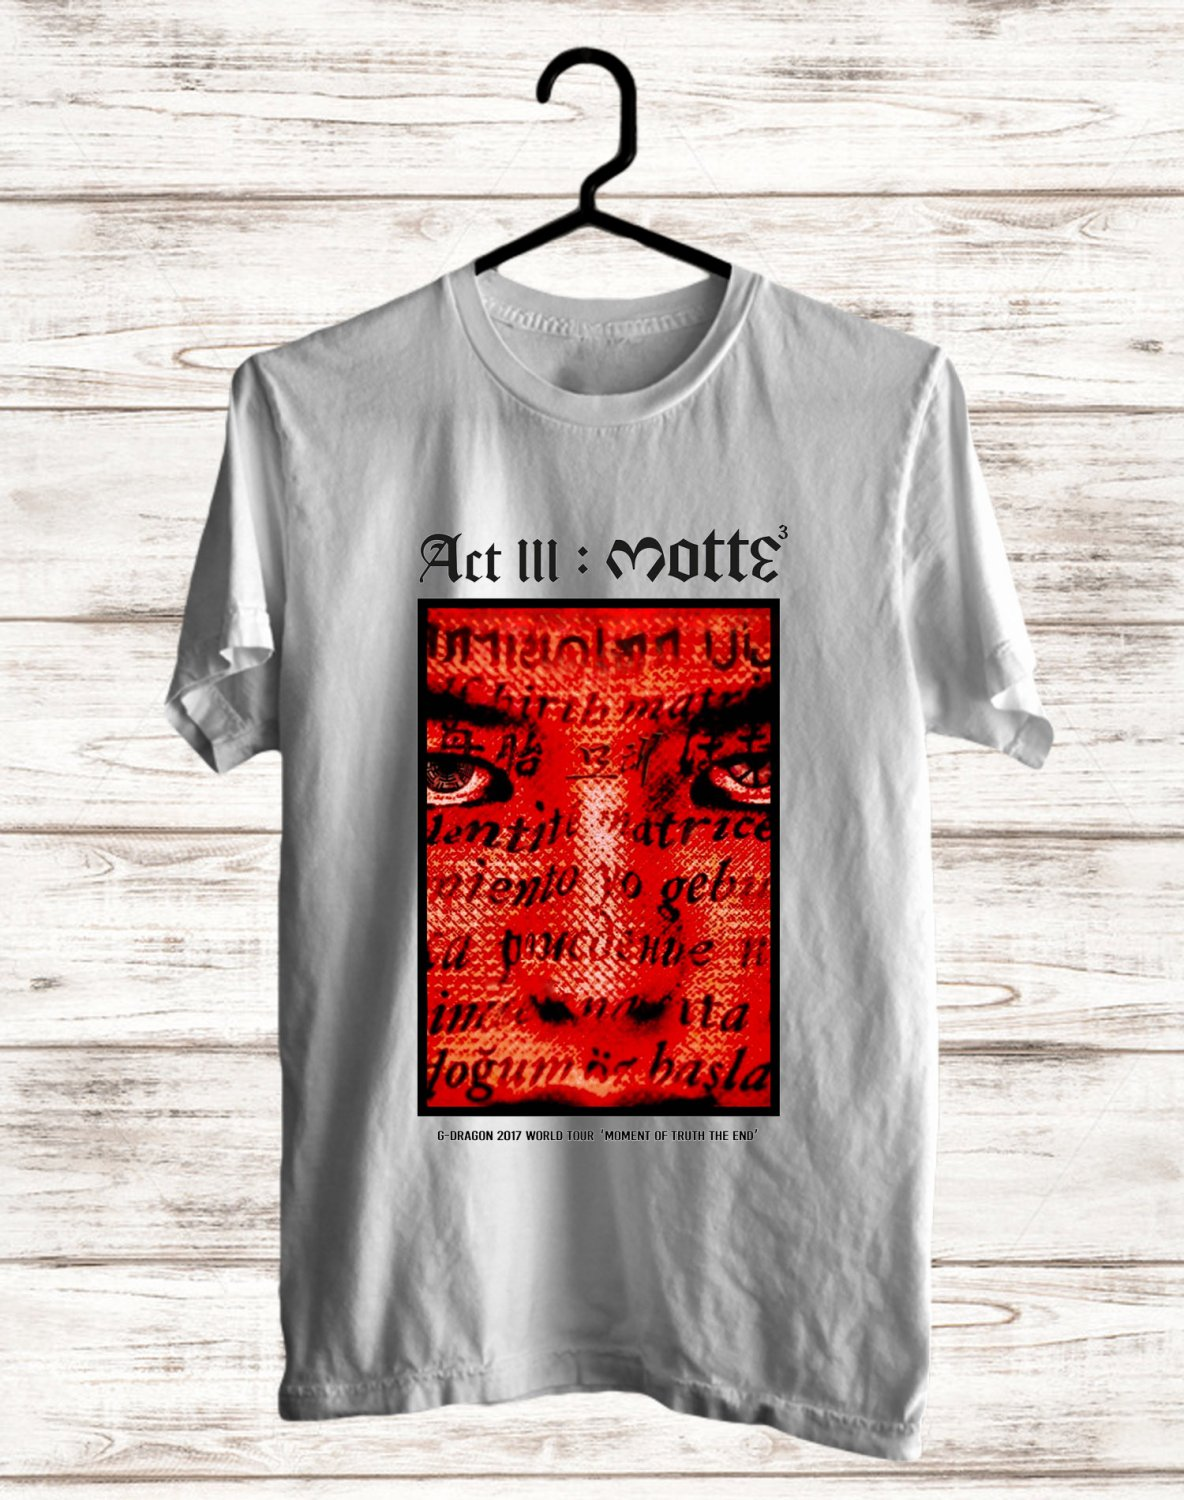 G-Dragon ACT III MOTTE WORLD TOUR 2017 White Tee's Front Side by Complexart